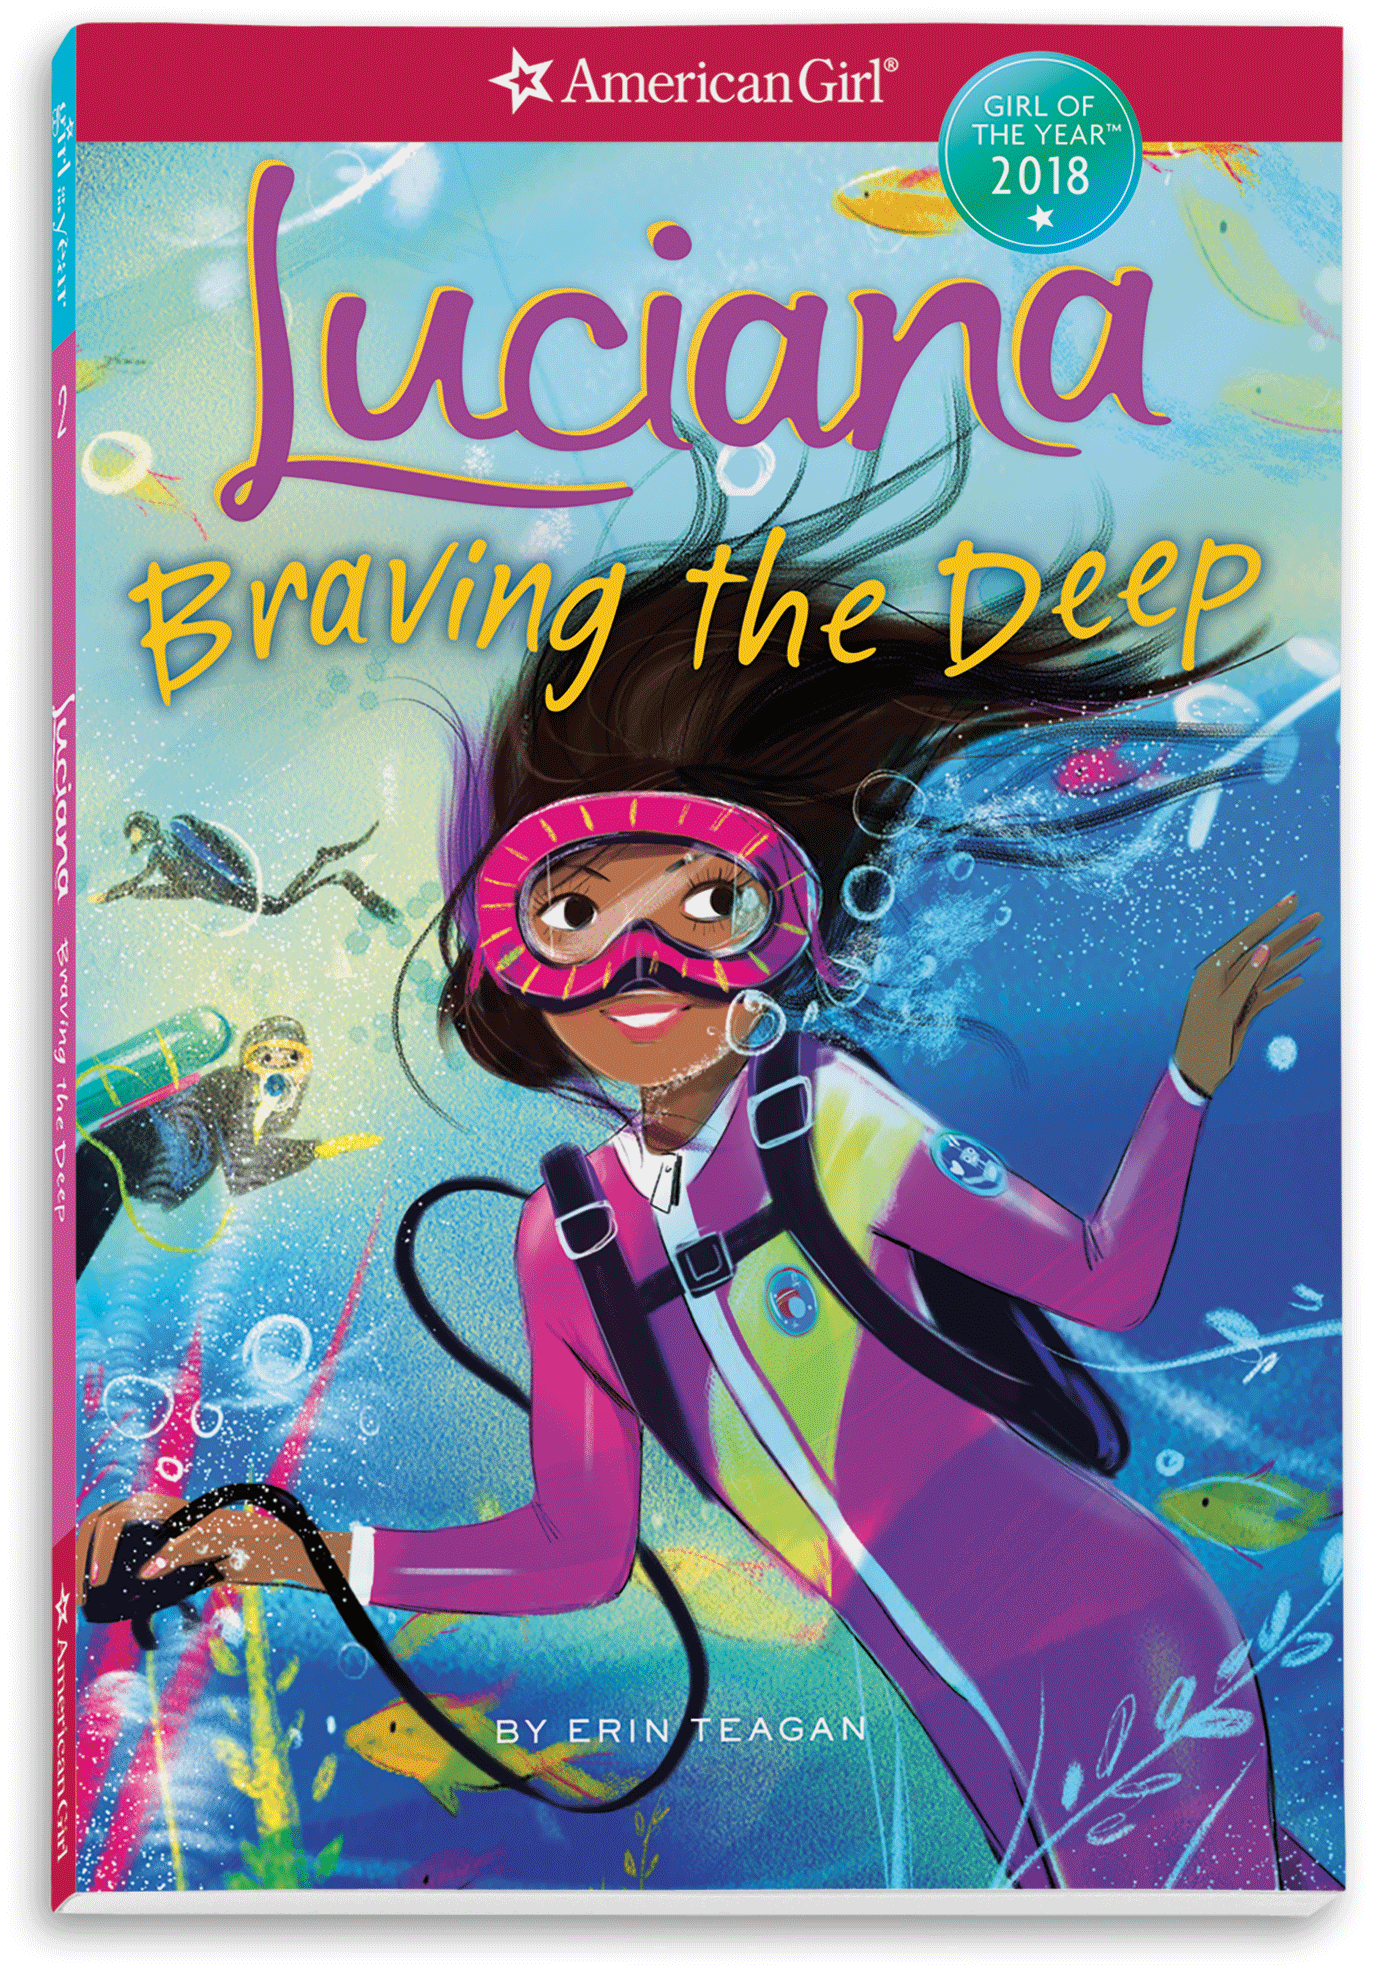 Luciana Braving The Deep